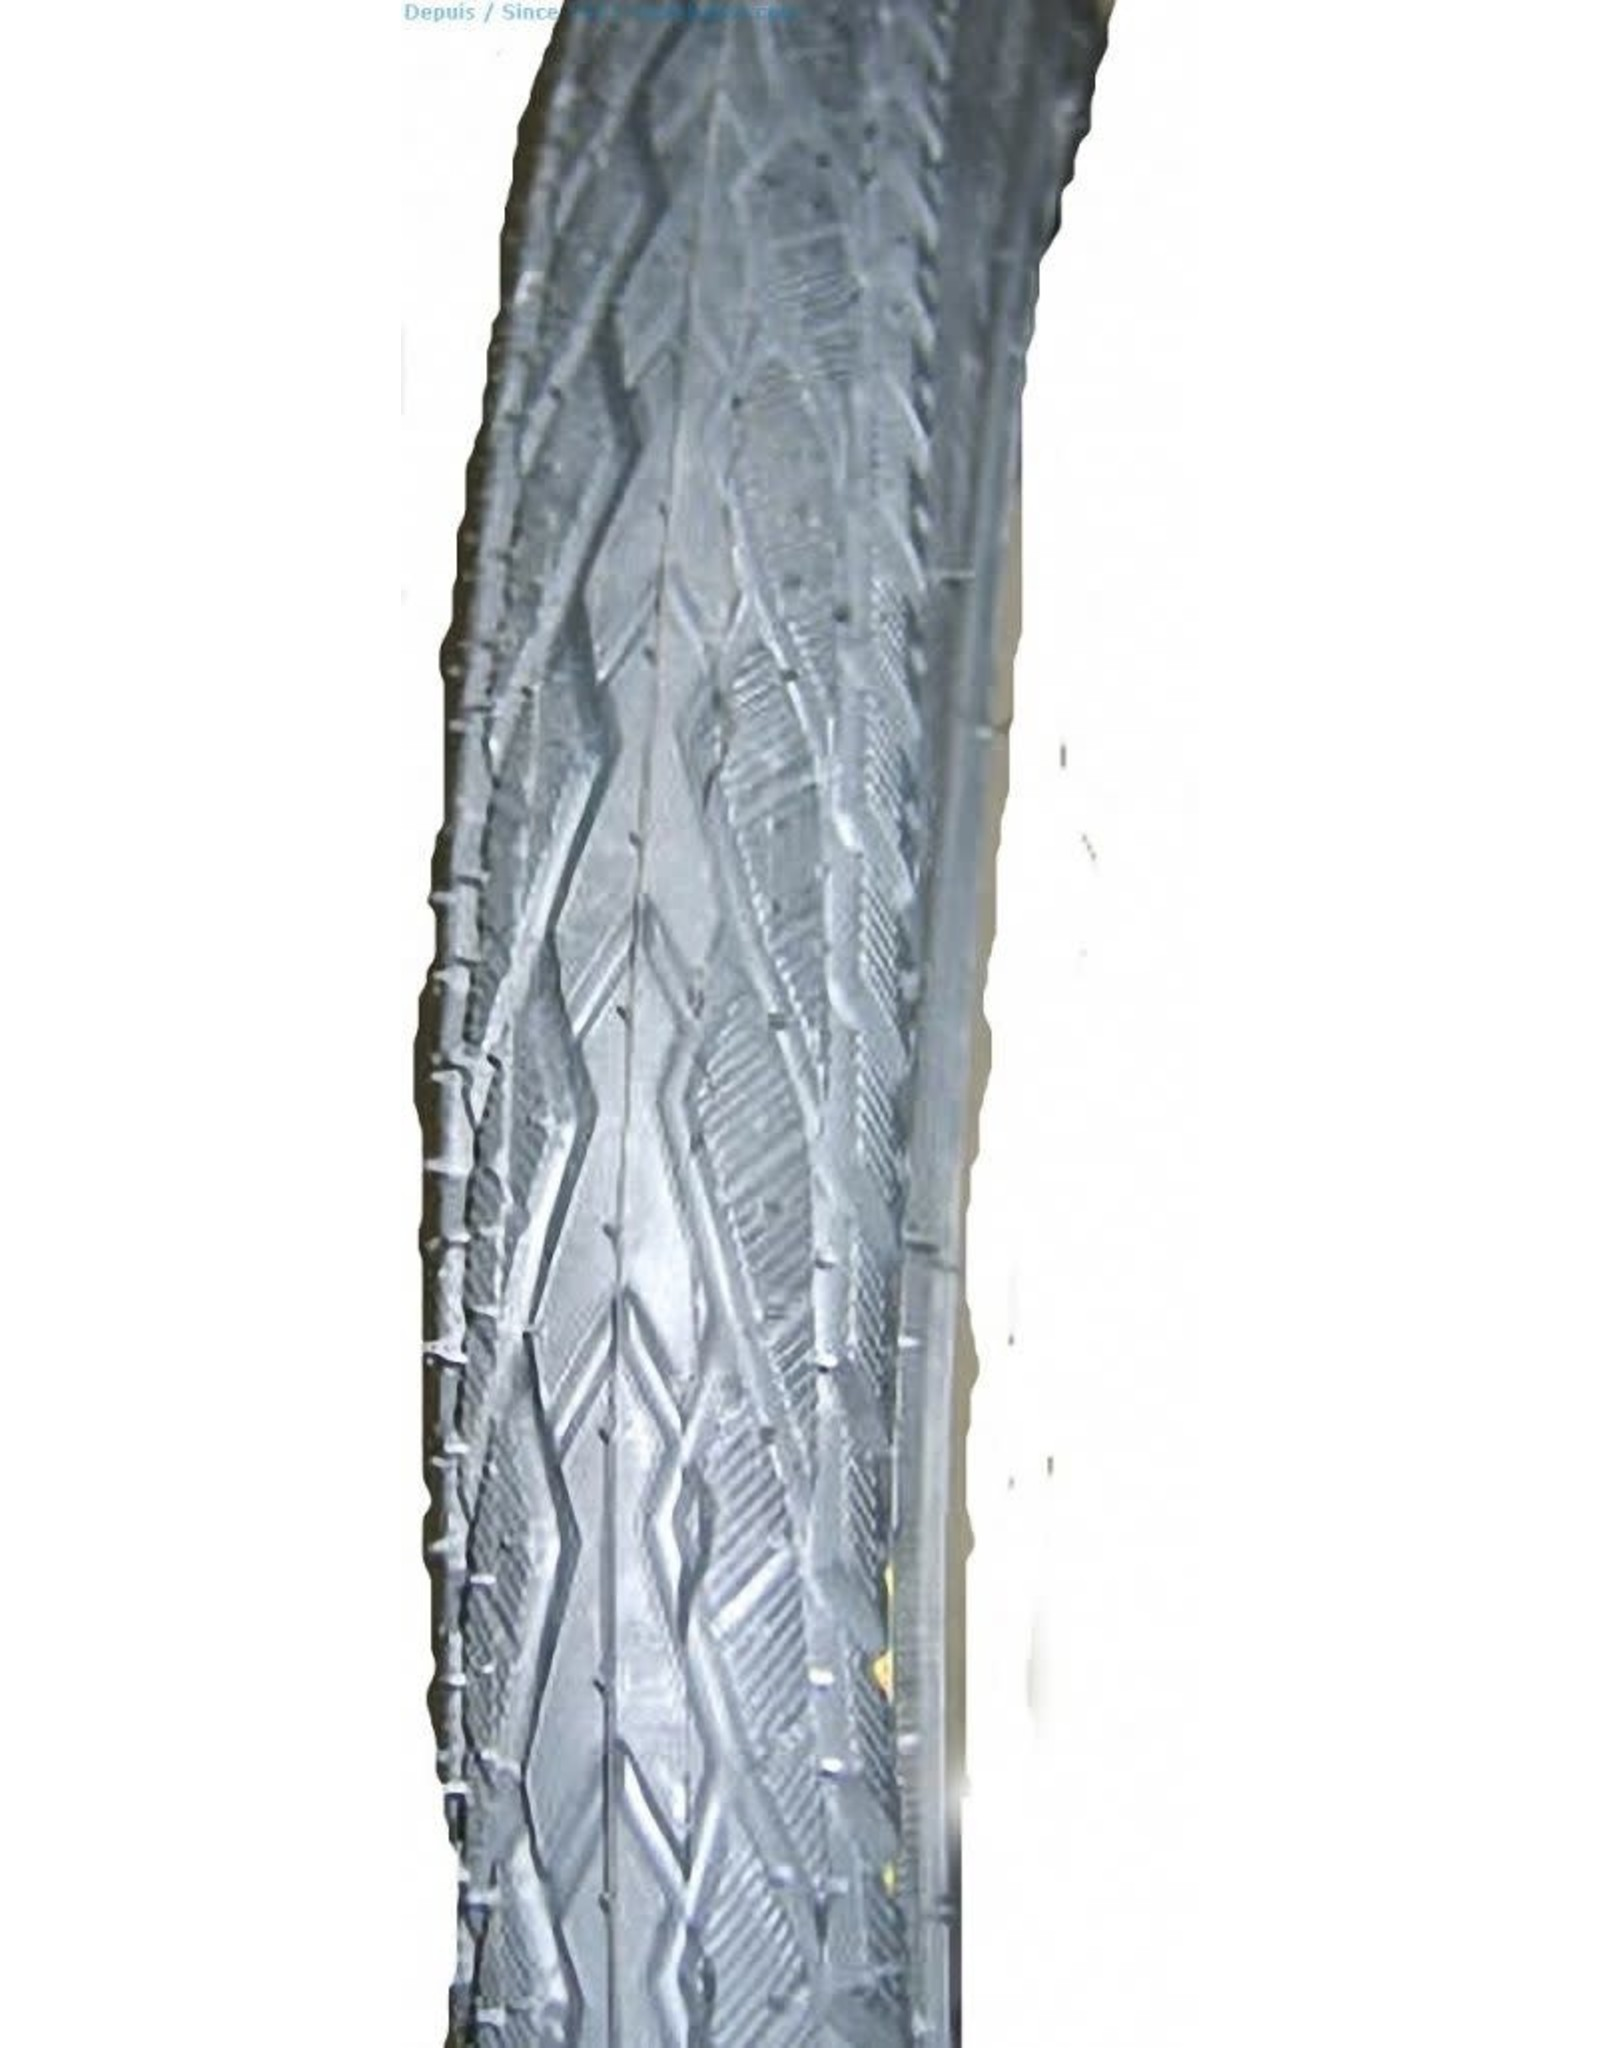 Smooth Tire 26x1.75